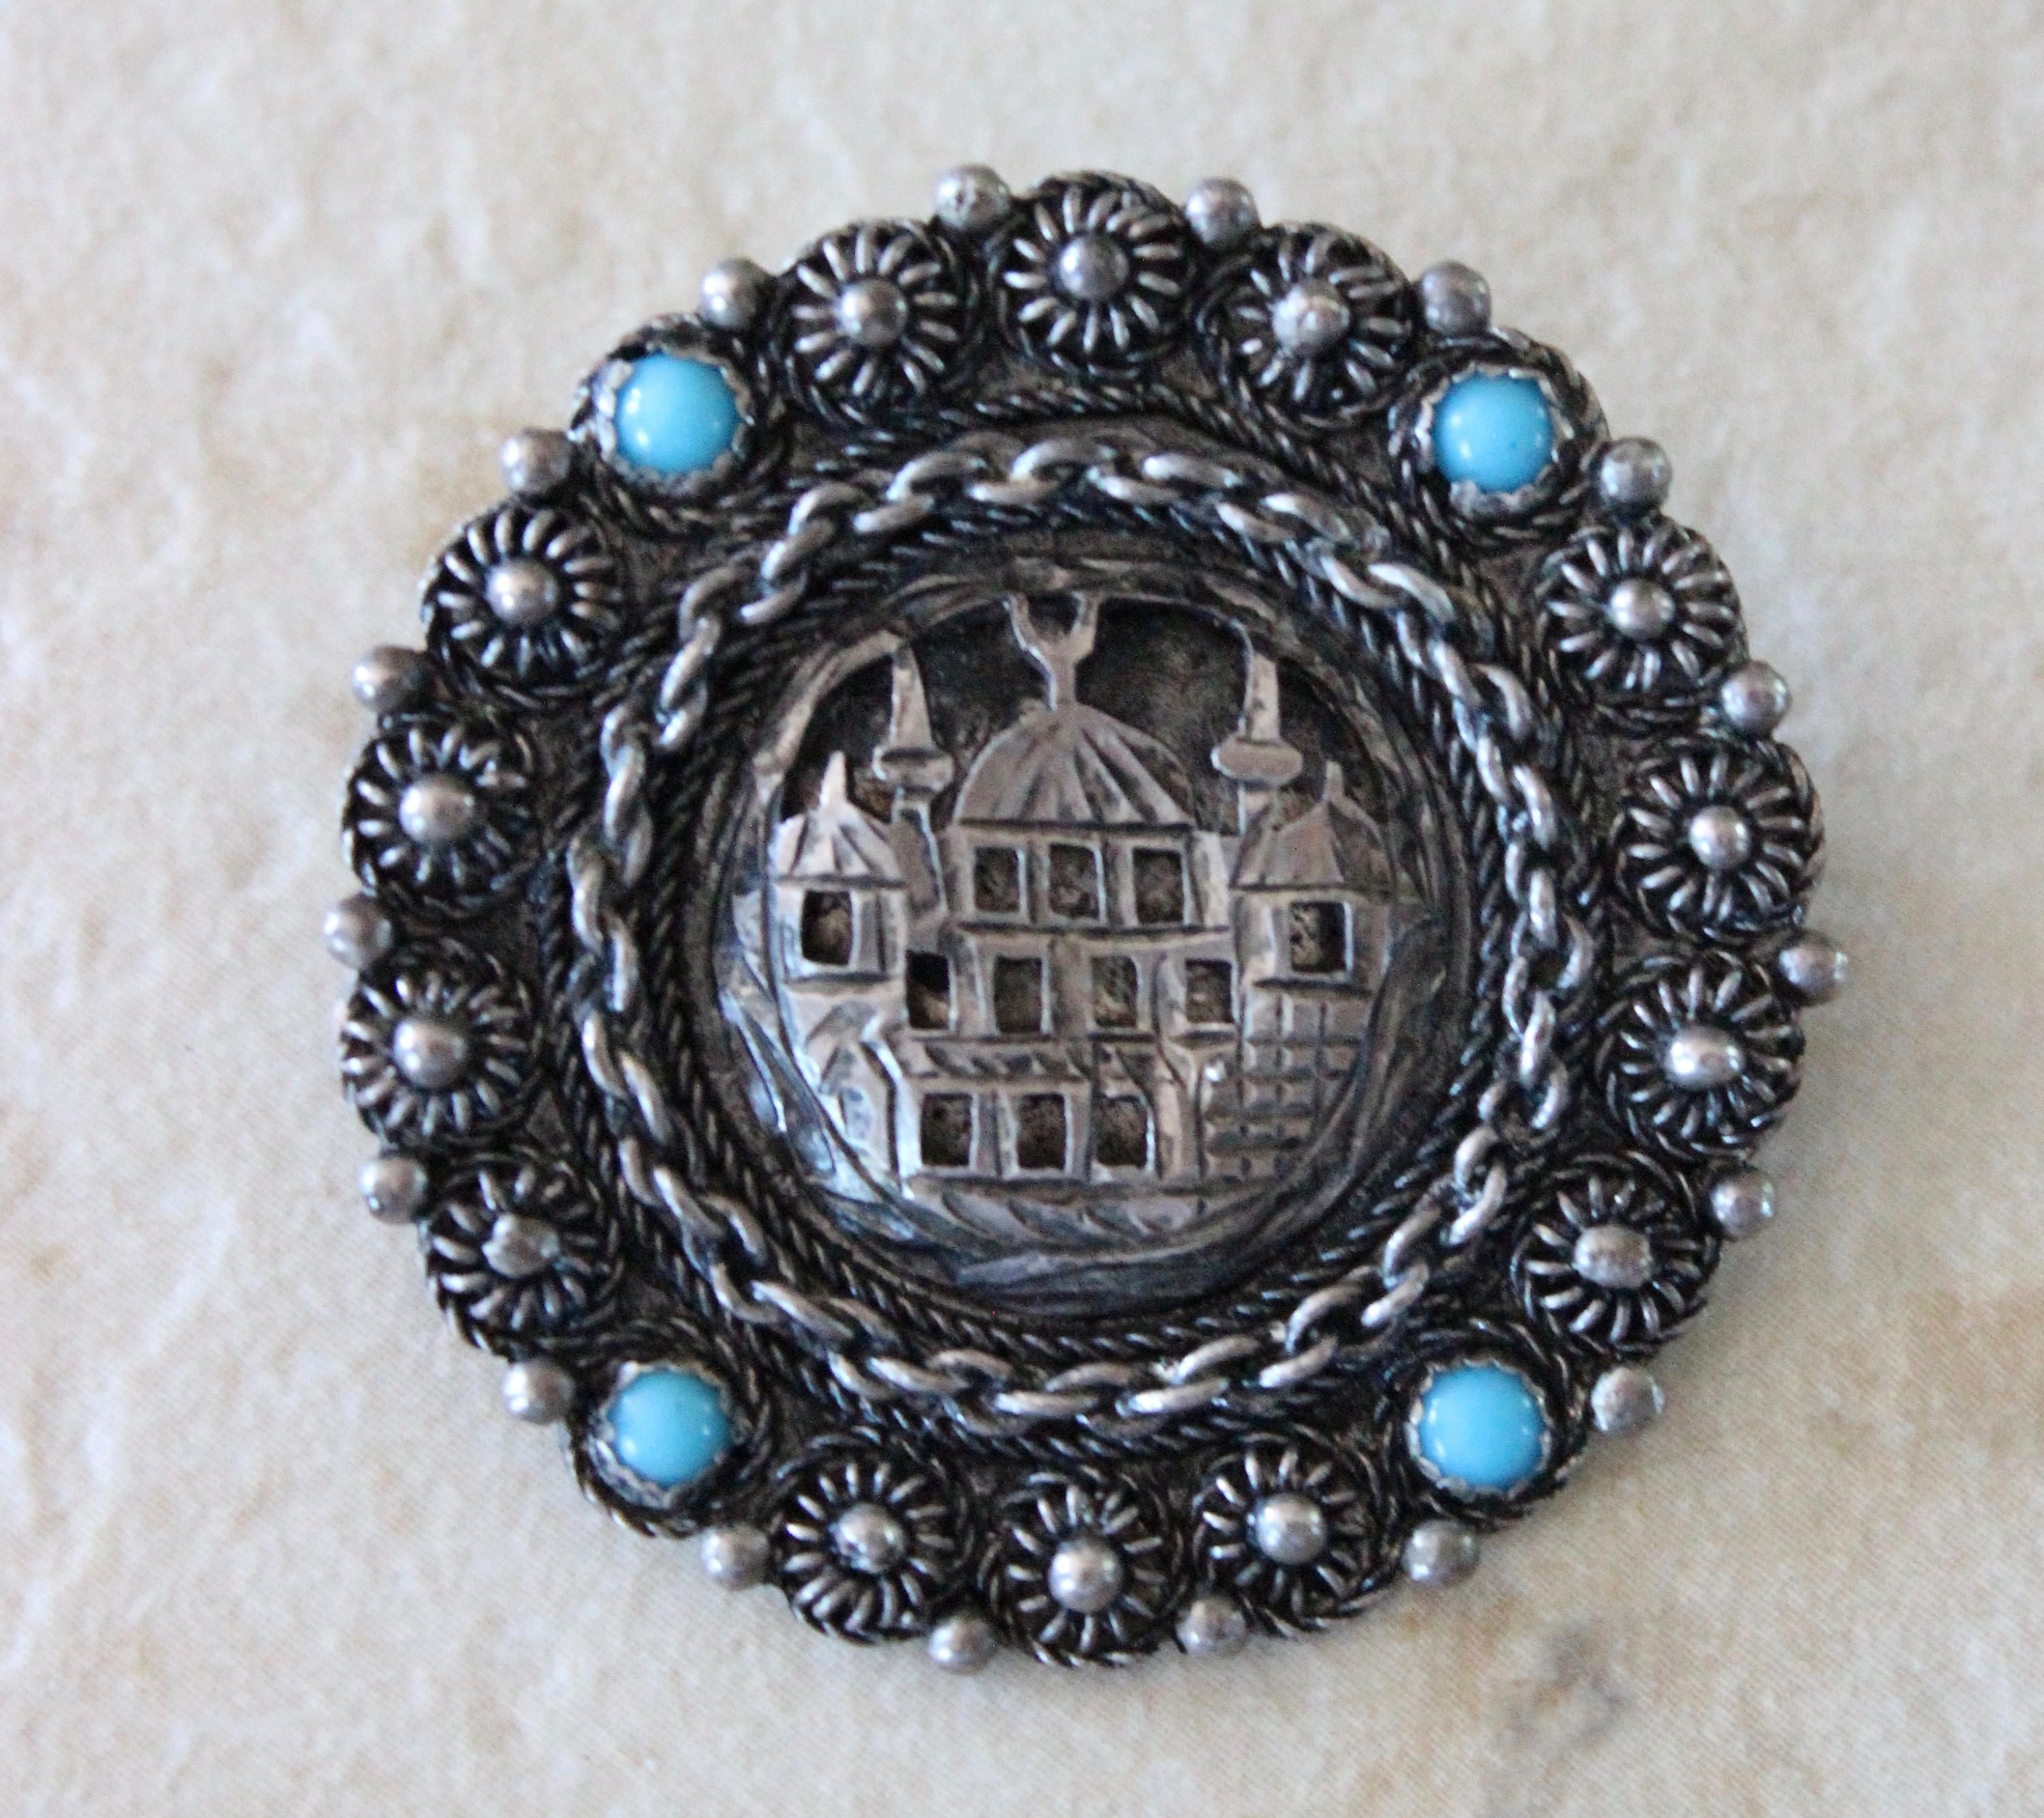 Vintage KETE 900 Sterling Silver Brooch Pin with Turquoise Stones by Calessabay on Etsy